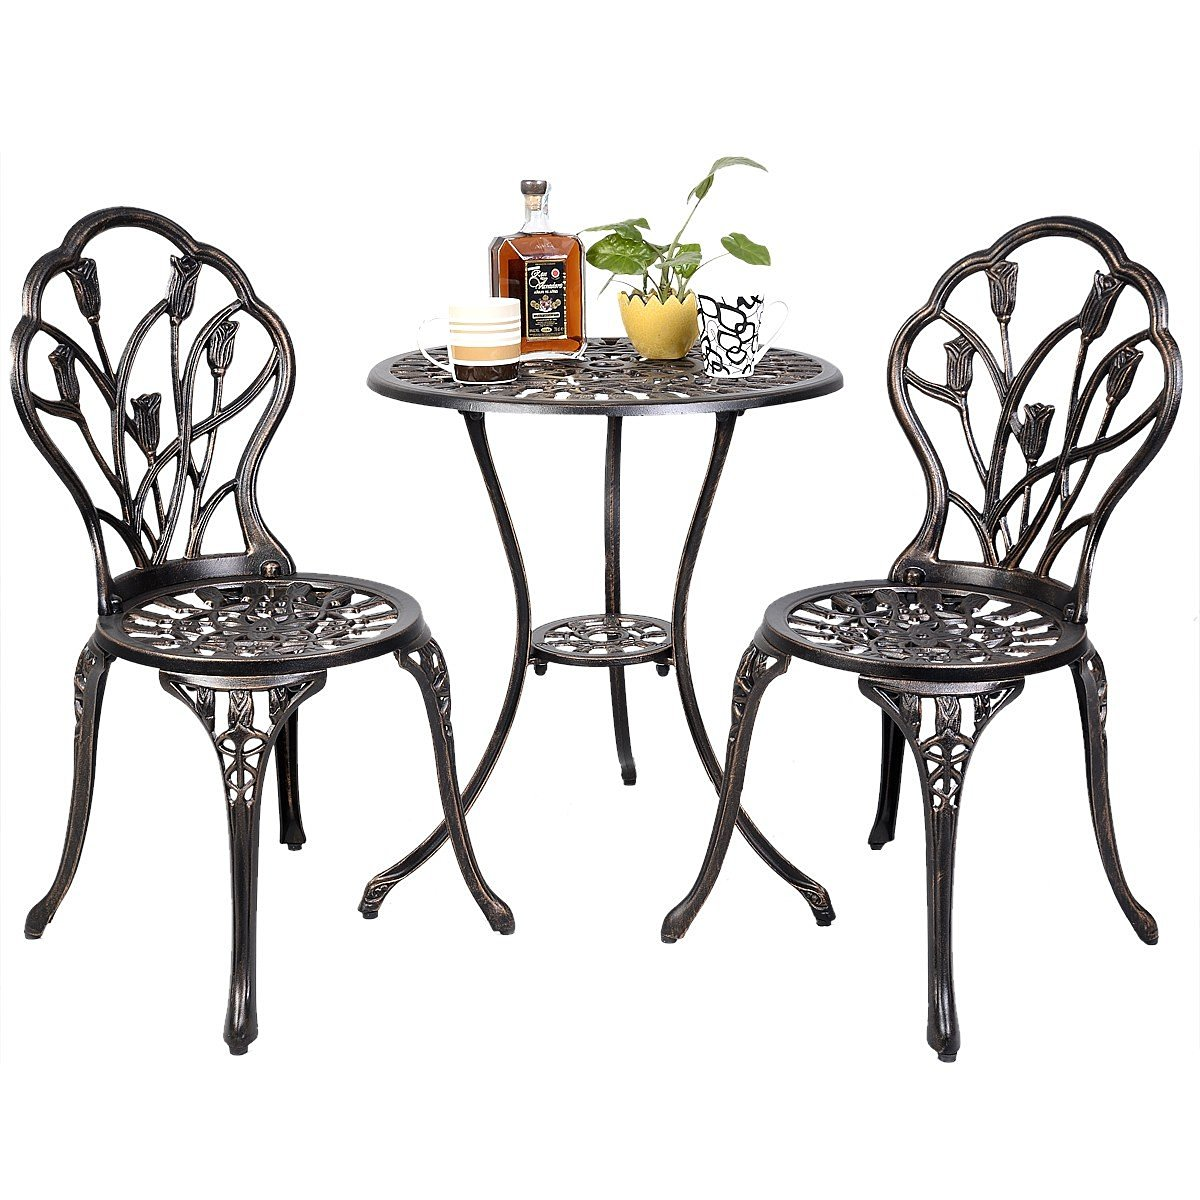 Cheap Bistro Set Sale Find Bistro Set Sale Deals On Line At Alibaba Com